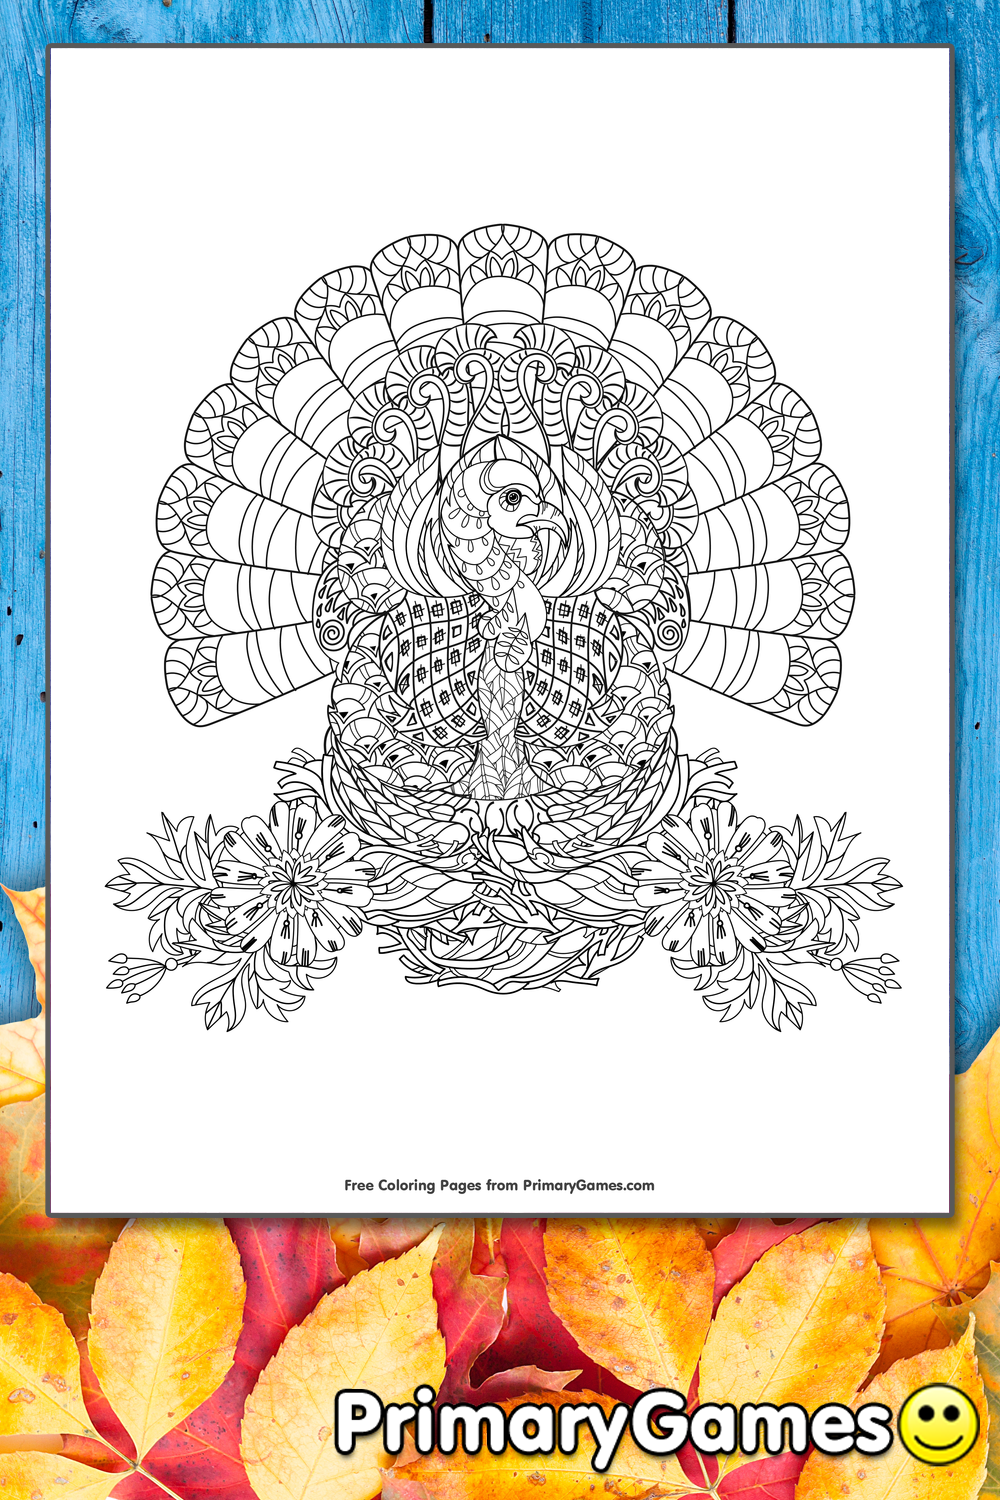 Kai Para Colorear Dibujos Yo Kai Watch Para Colorear moreover Spongebob Patrick Coloring Page also Coloring Page further Ausmalbilder Kostenlos Barbie additionally Turkey Zentangle. on halloween coloring pages